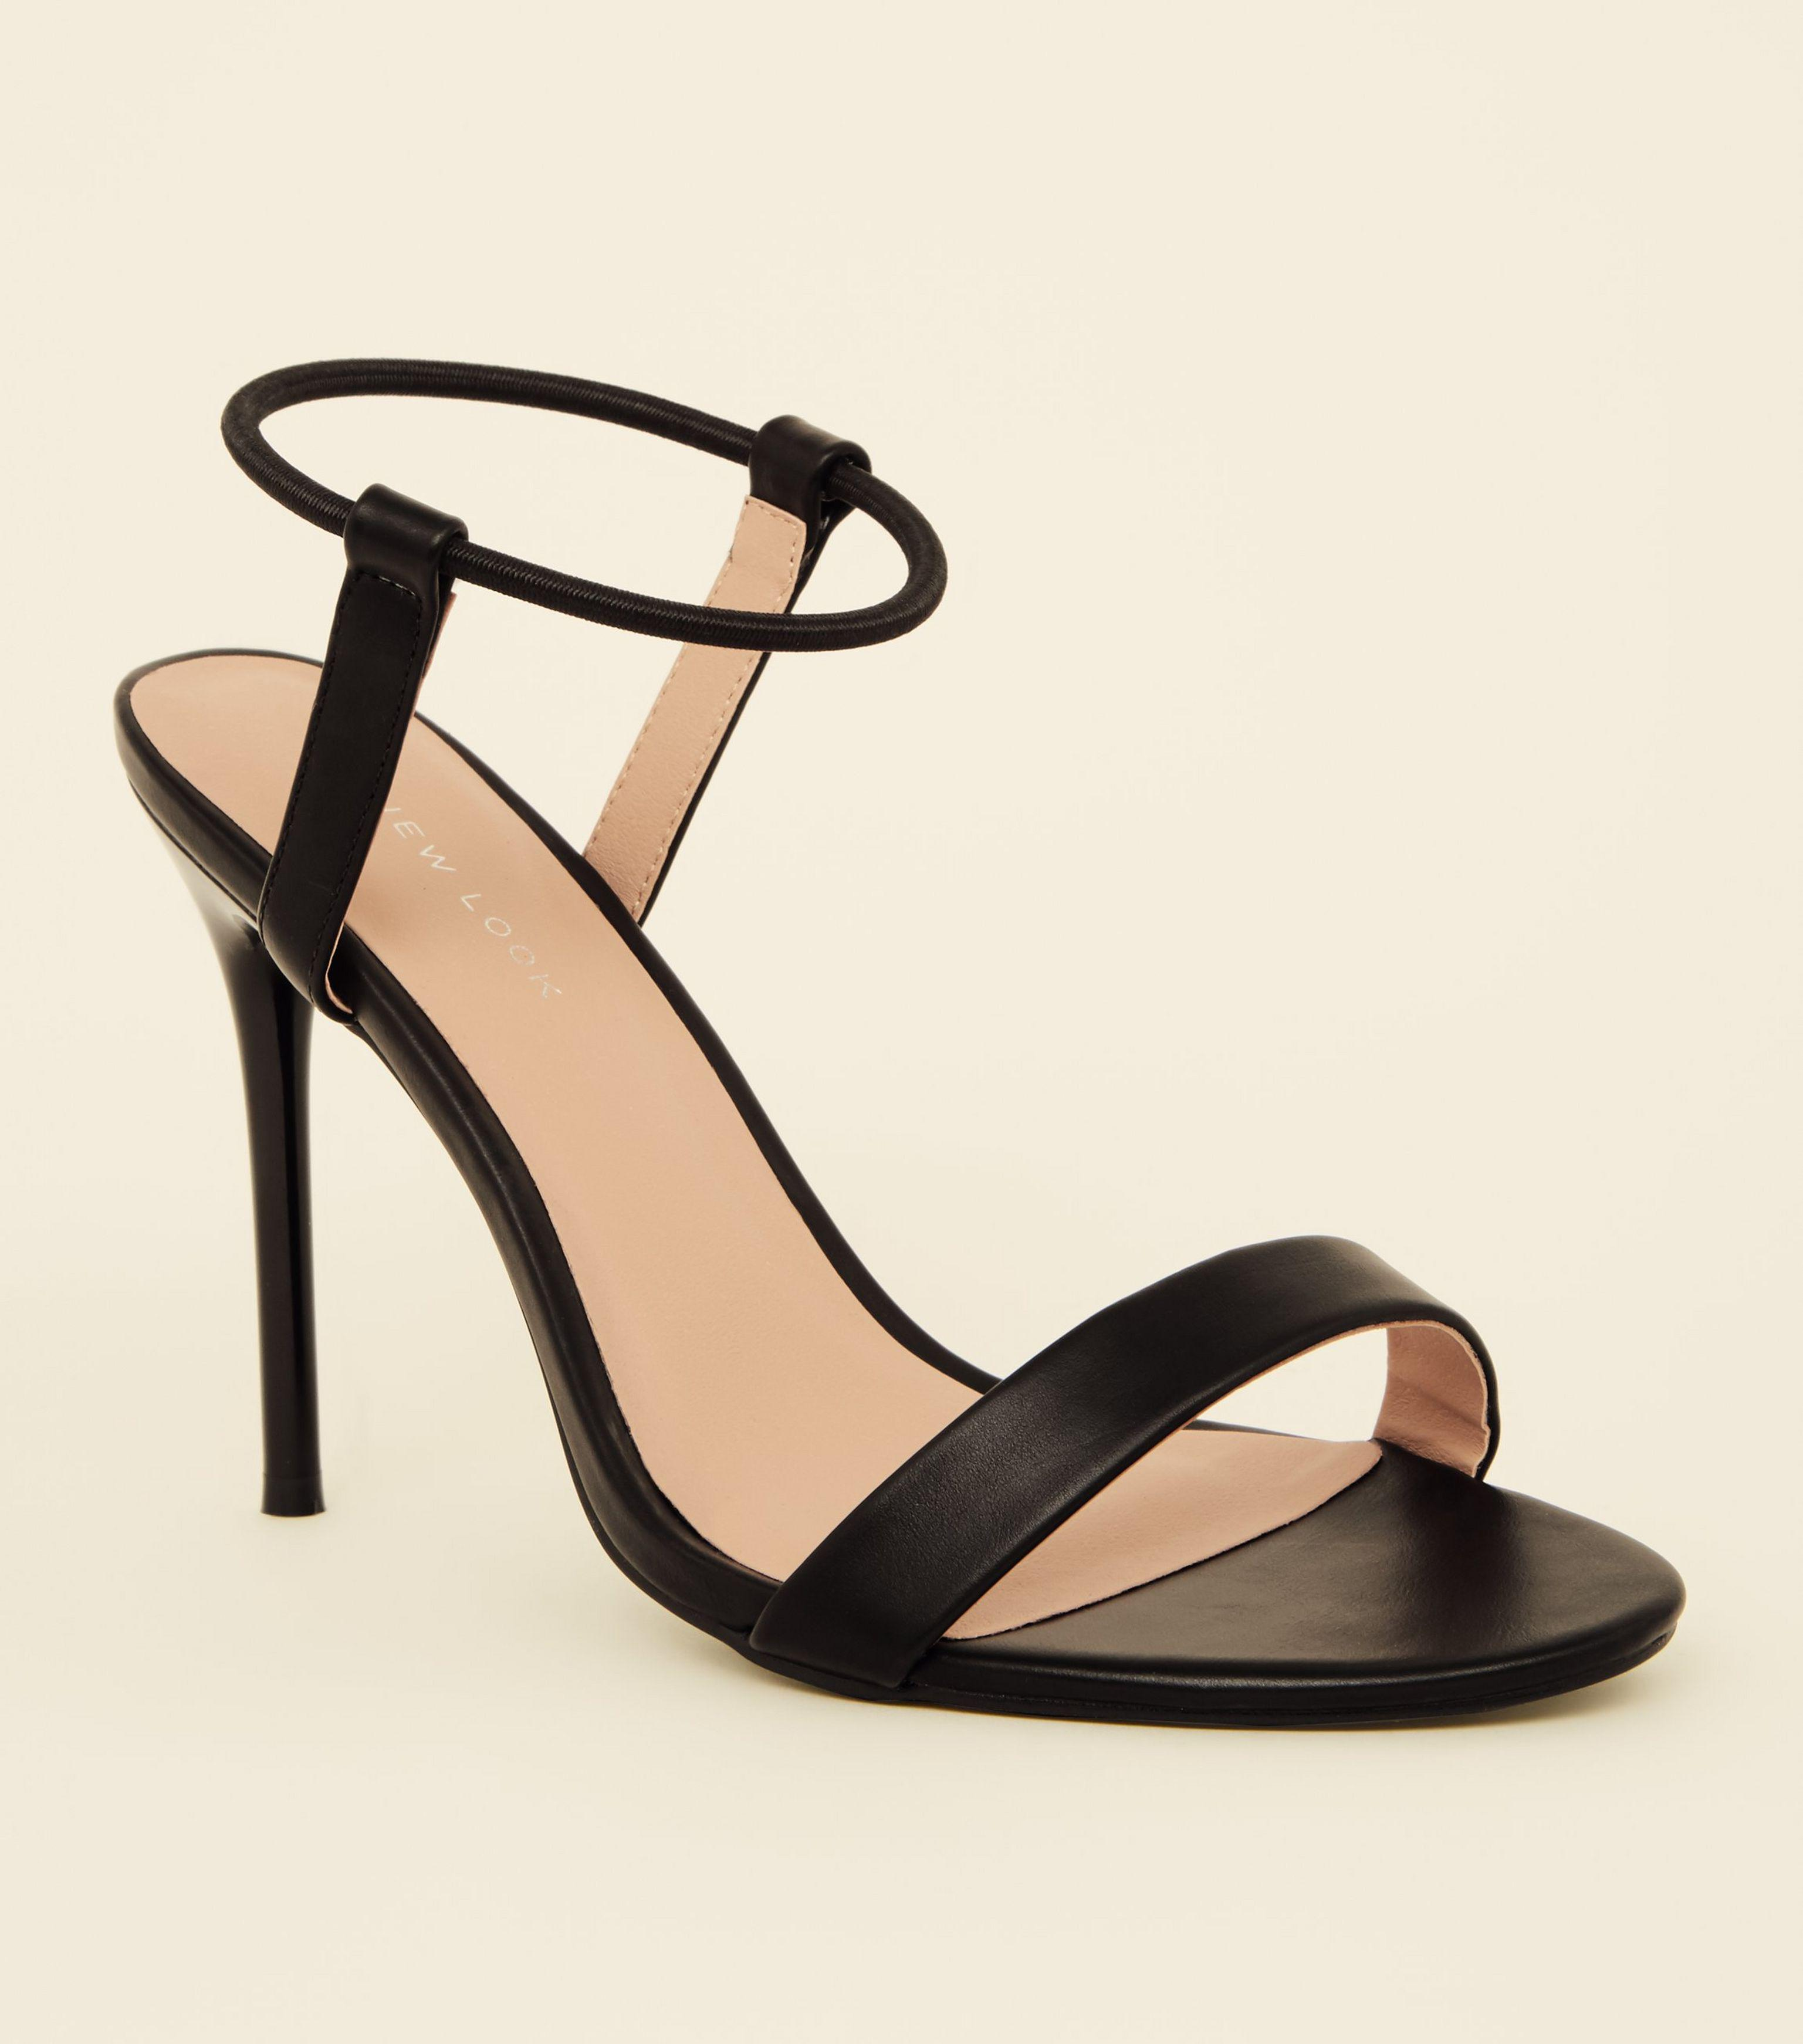 ca2a5c43cc2ac5 New Look Black Elastic Ankle Band Stiletto Heels in Black - Lyst